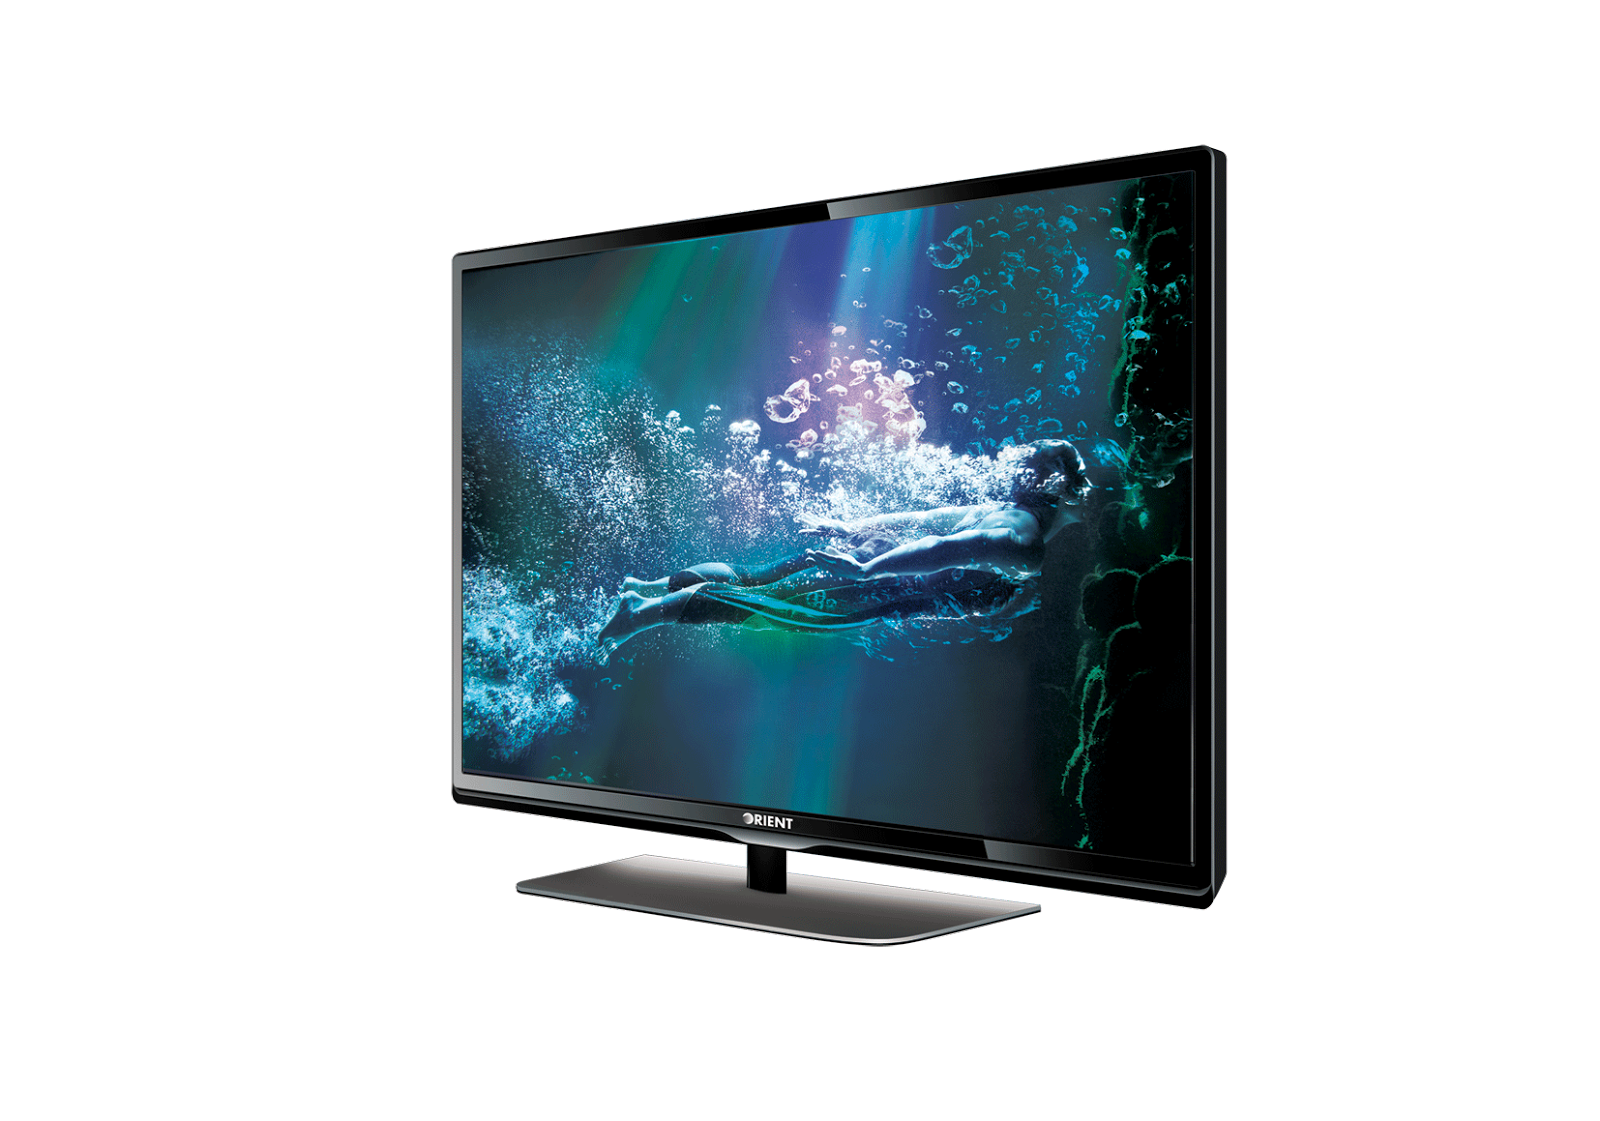 orient led tv